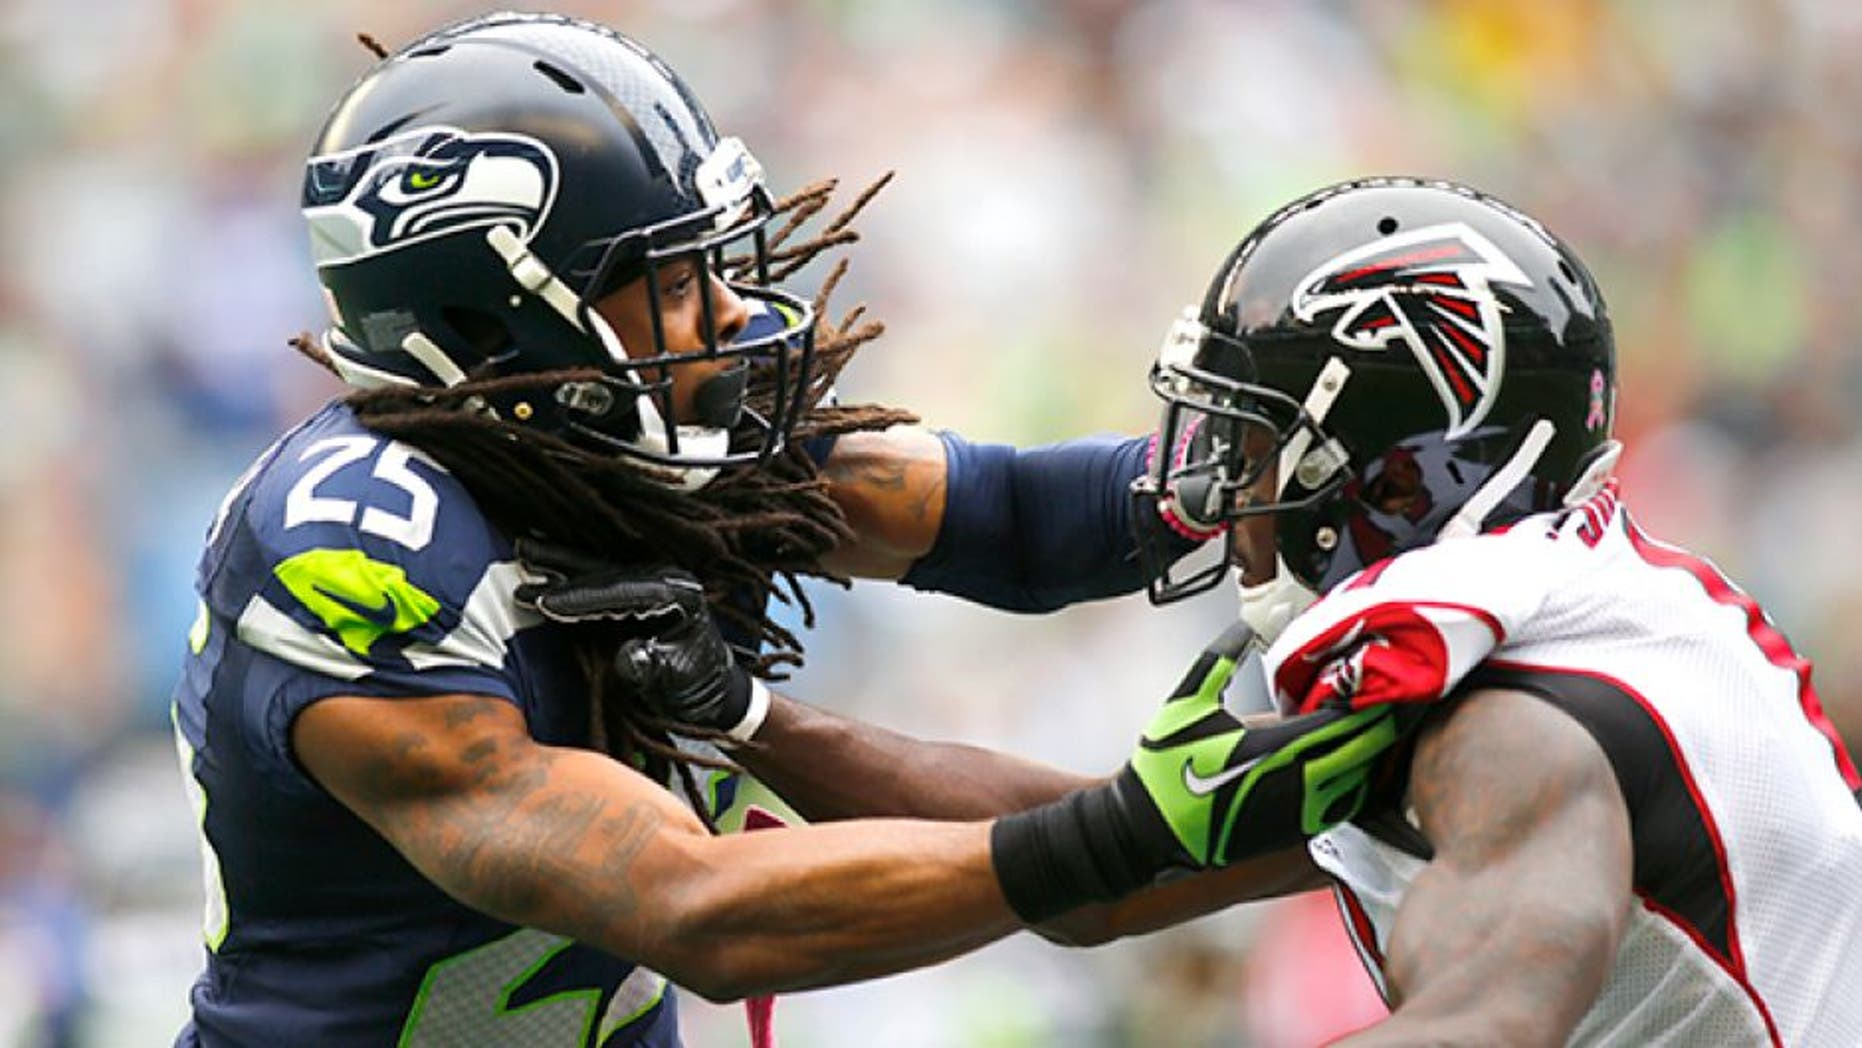 SEATTLE, WA - OCTOBER 16: Cornerback Richard Sherman #25 of the Seattle Seahawks defends against Wide receiver Julio Jones #11 of the Atlanta Falcons at CenturyLink Field on October 16, 2016 in Seattle, Washington. (Photo by Jonathan Ferrey/Getty Images)